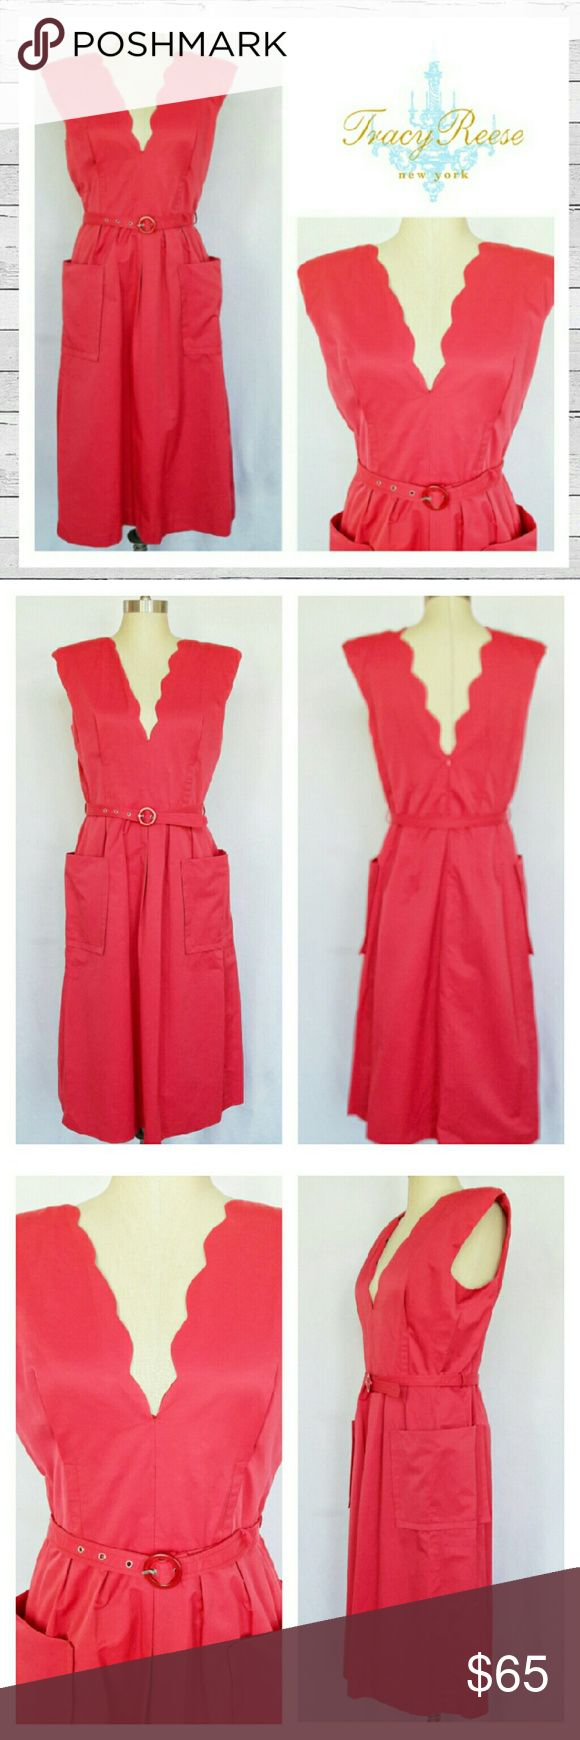 Tracy Reese New York Dress Sz 12 Tracy Reese New York Dress Sz 12 in a beautiful watermelon! Cotton/Nylon shell, Avetate lining. Excellent like new condition. Beautiful! Sorry no trades. Tracy Reese Dresses Midi